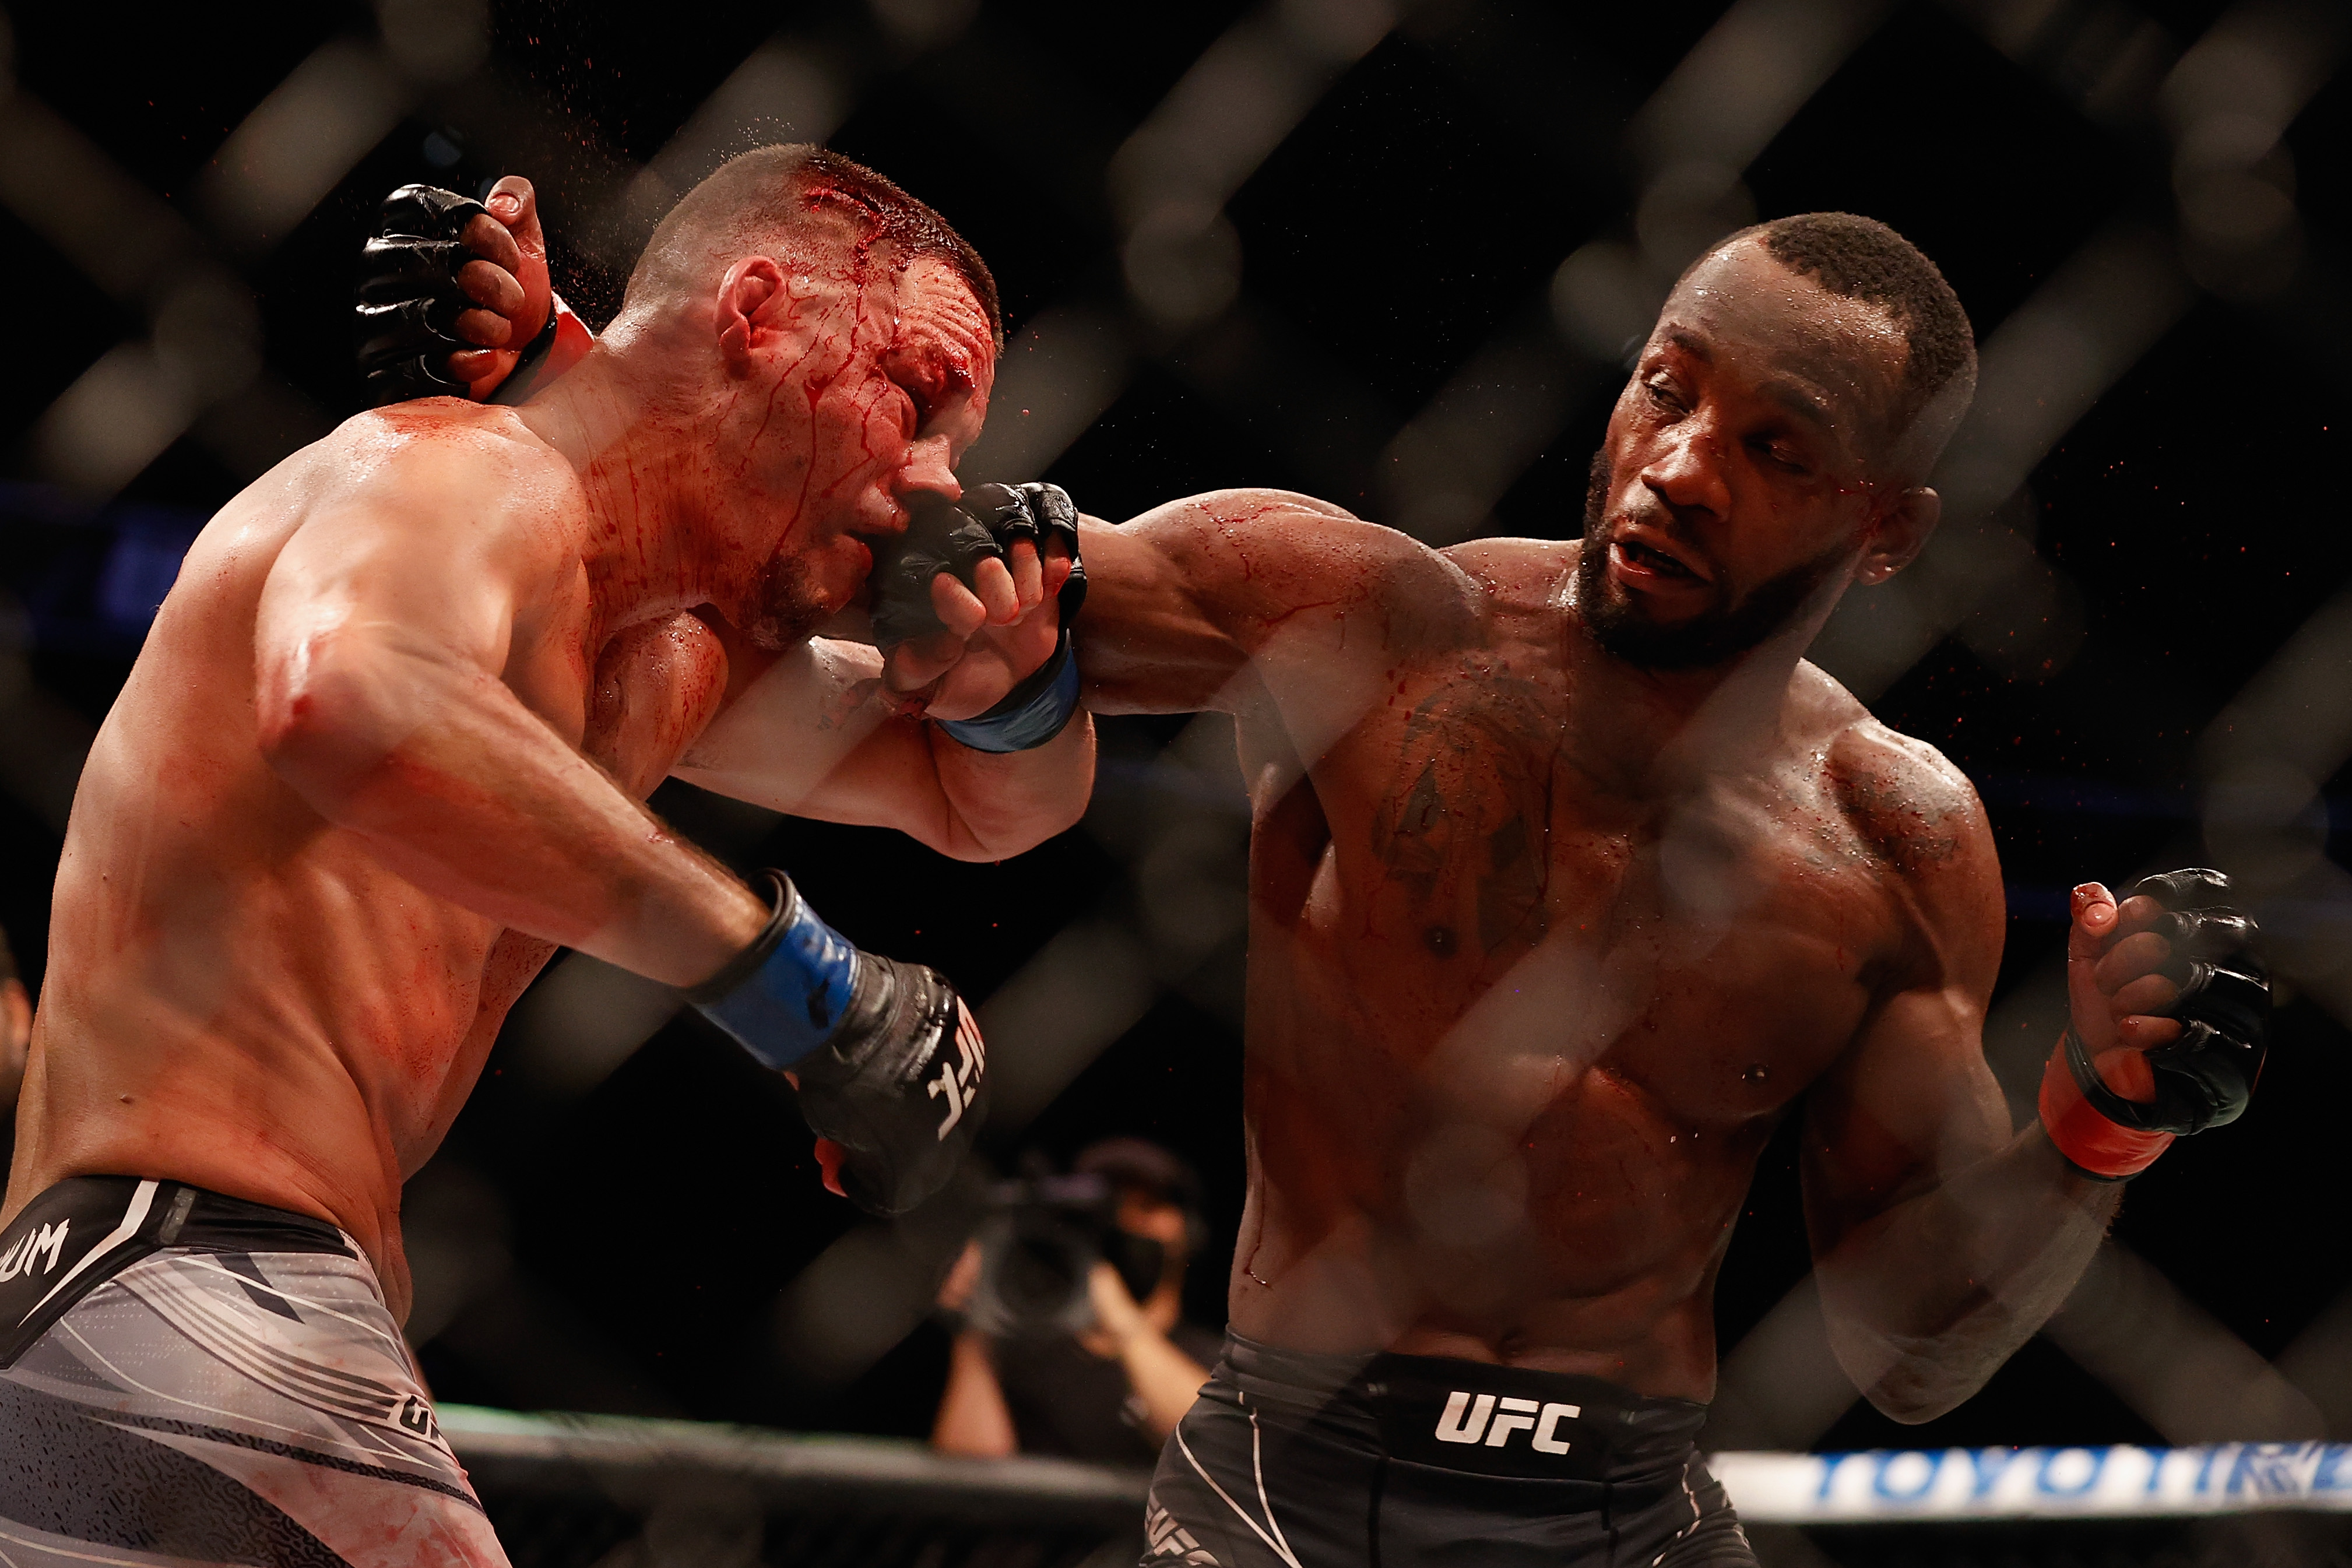 Leon Edwards strikes Nate Diaz in their fight at UFC 263